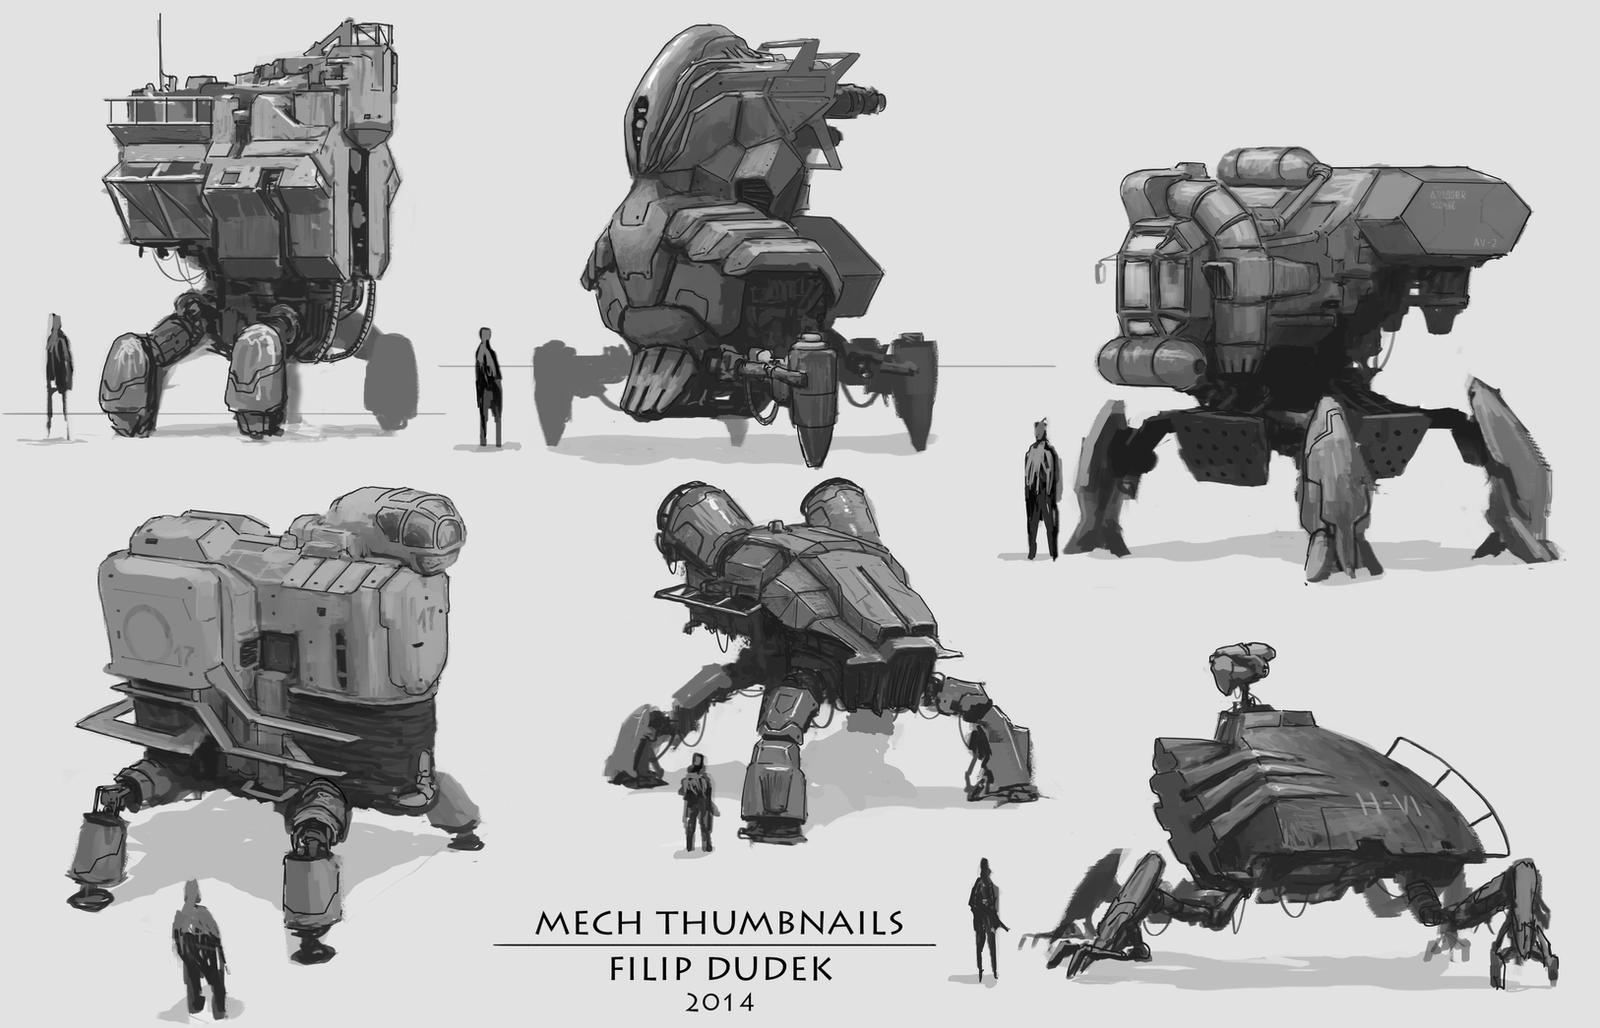 fallout 3 schematics with Mech Thumbnail 501169280 on Syringer further NERFMOD Nerf Slingfire Template 580659898 further 5 in addition Mech Thumbnail 501169280 together with My Personal Armored Core 212707731.